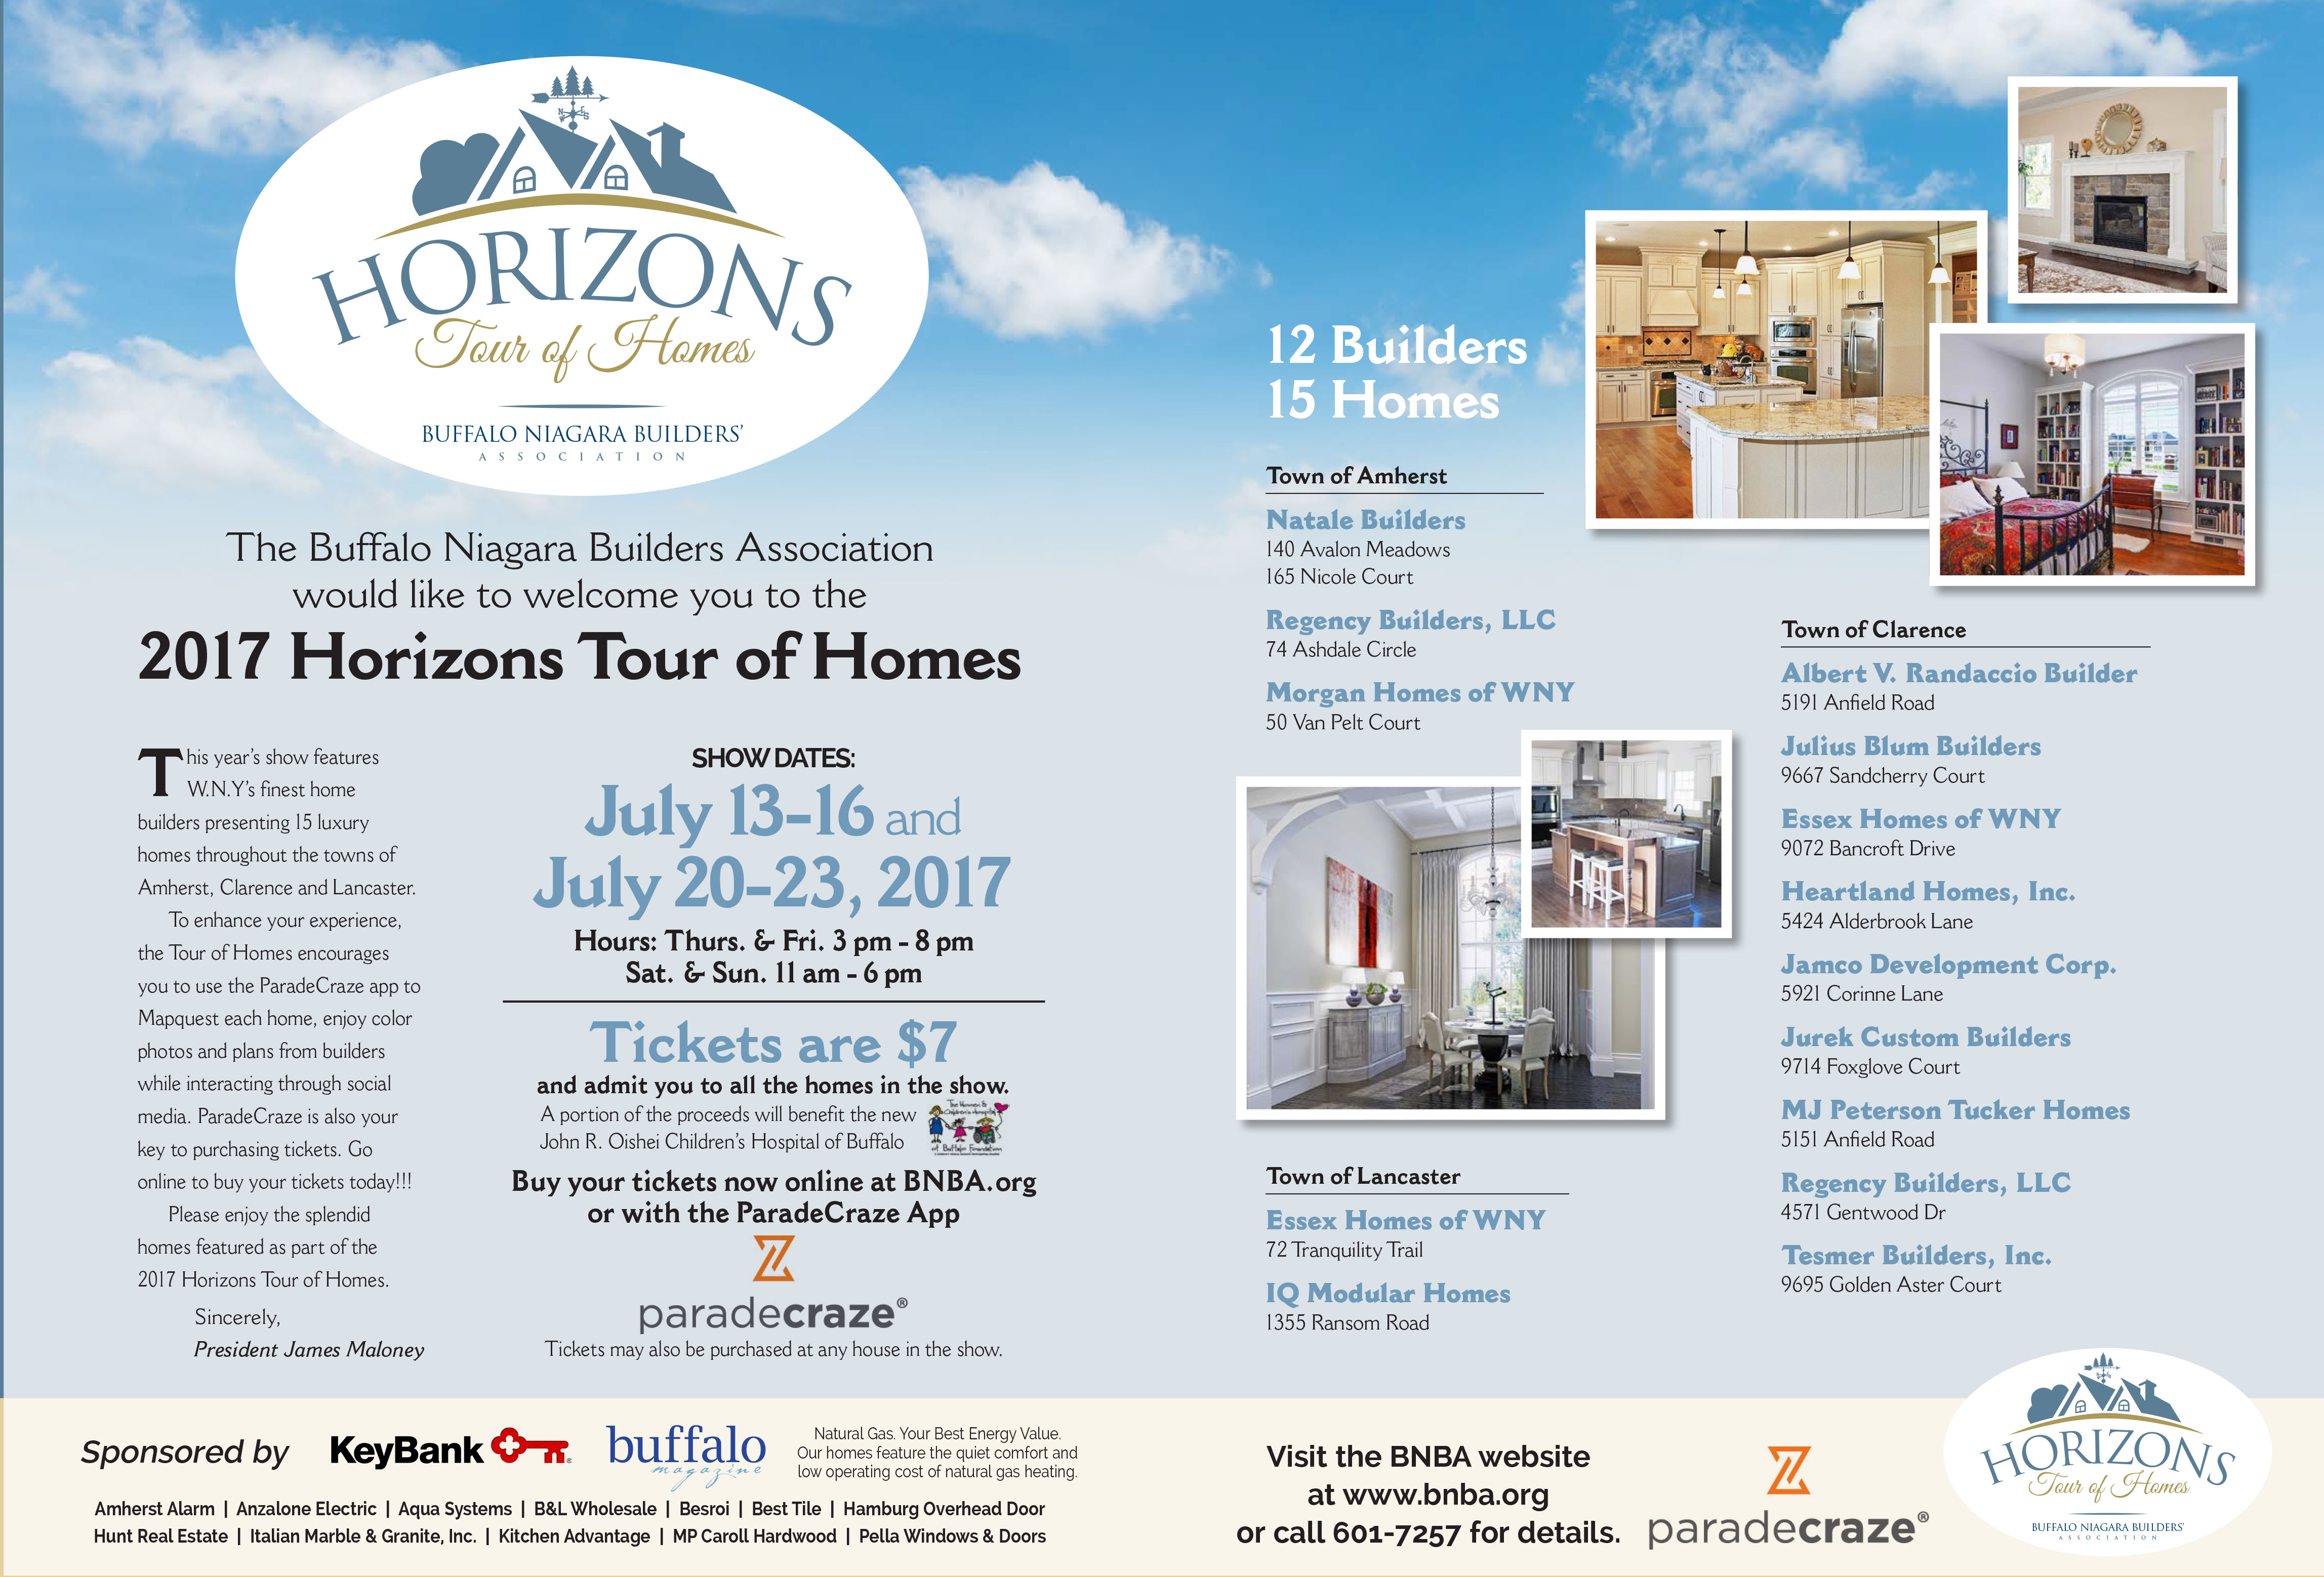 Floor Being Able To Host Hospital Tour Builders Model This Year Weget Honor Our Avalonmeadows Visit Us At Horizons 2017 Natale Builders You Will Be Able To Go Around houzz 01 Hamburg Overhead Door